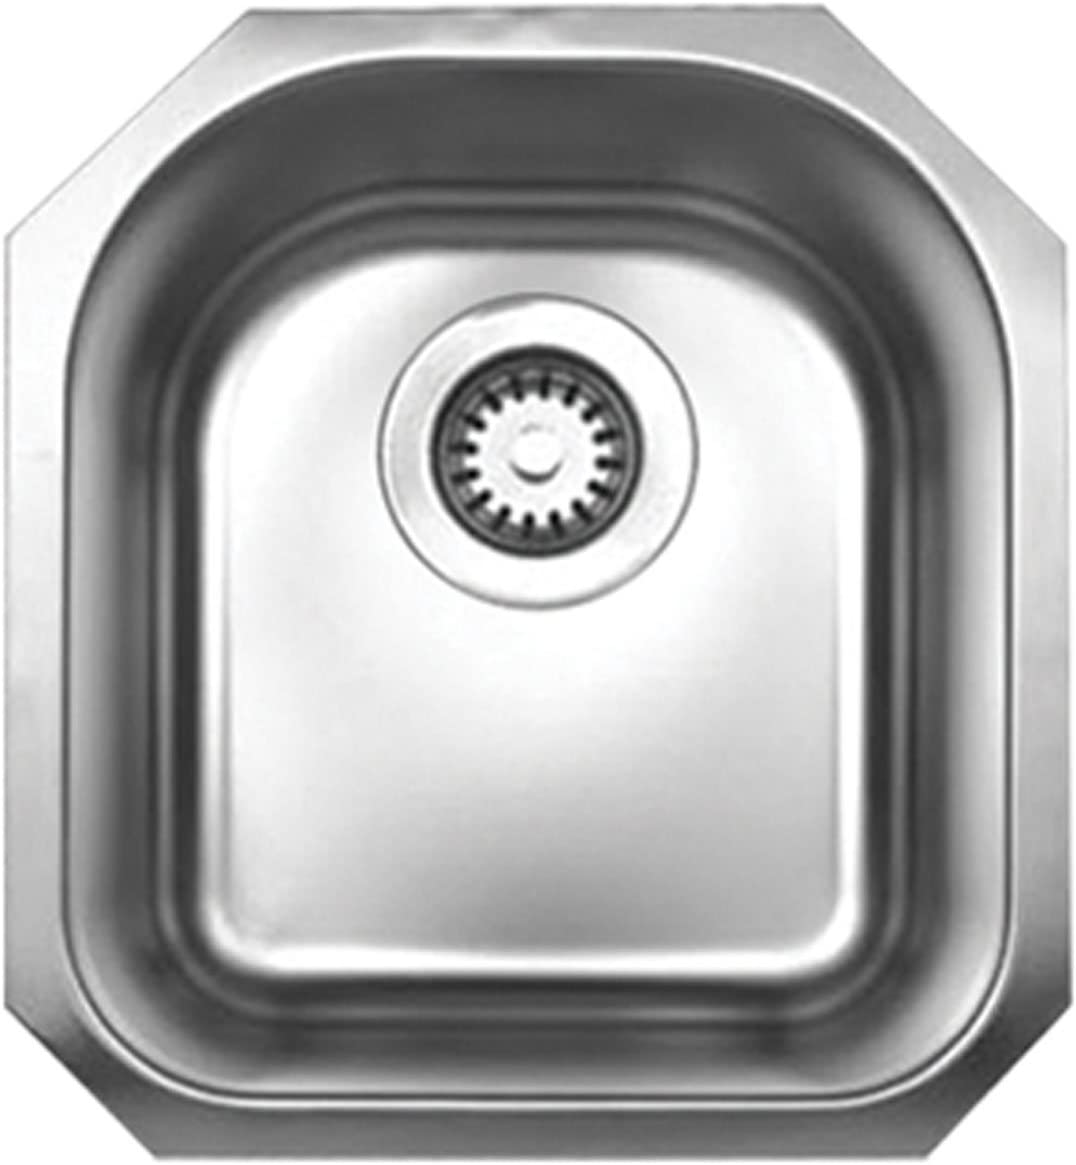 Whitehaus WHNU1618-BSS Noah S Collection 18 1 8-Inch Single Bowl Undermount Sink, Brushed Stainless Steel